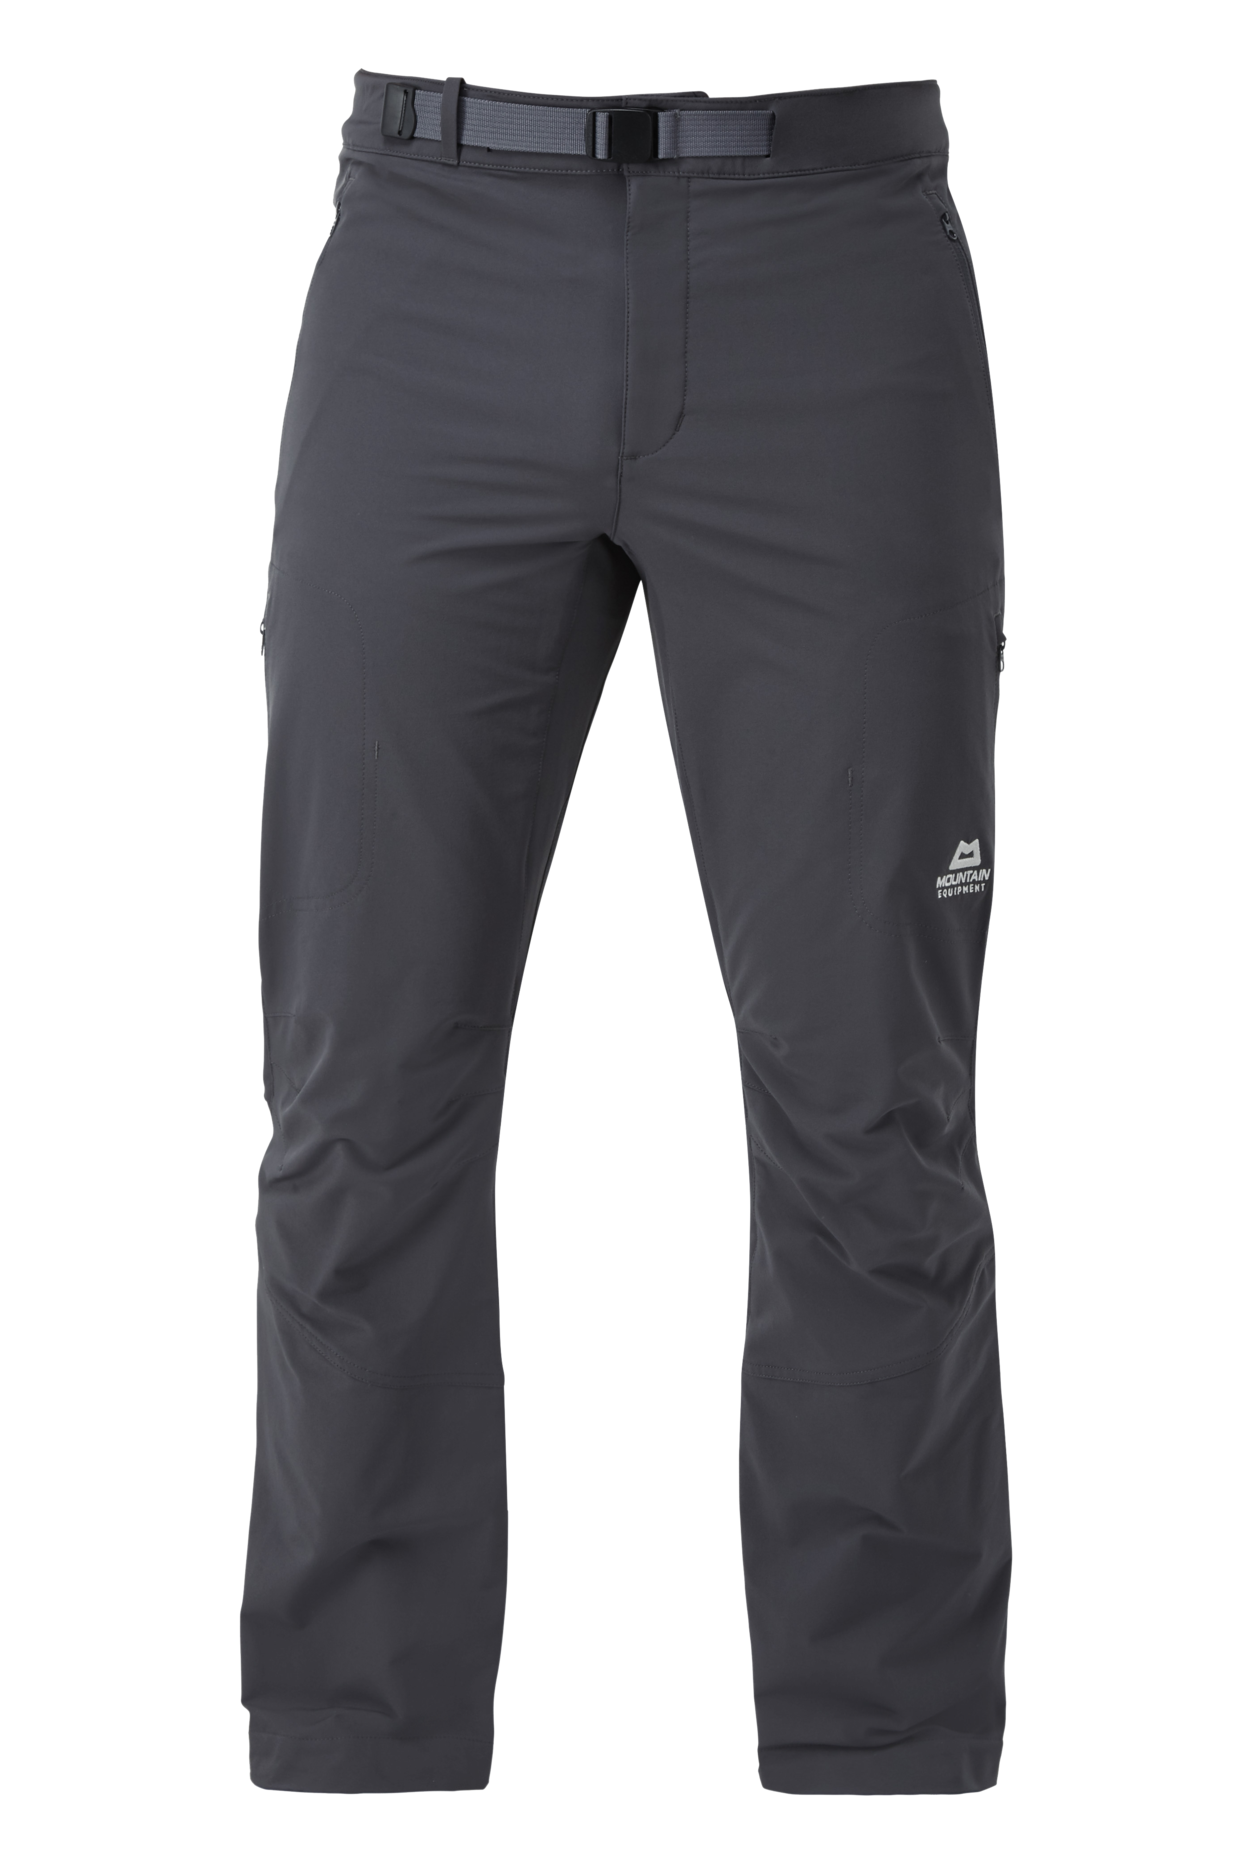 Mountain Equipment Mens Ibex Pant-Anvil Grey